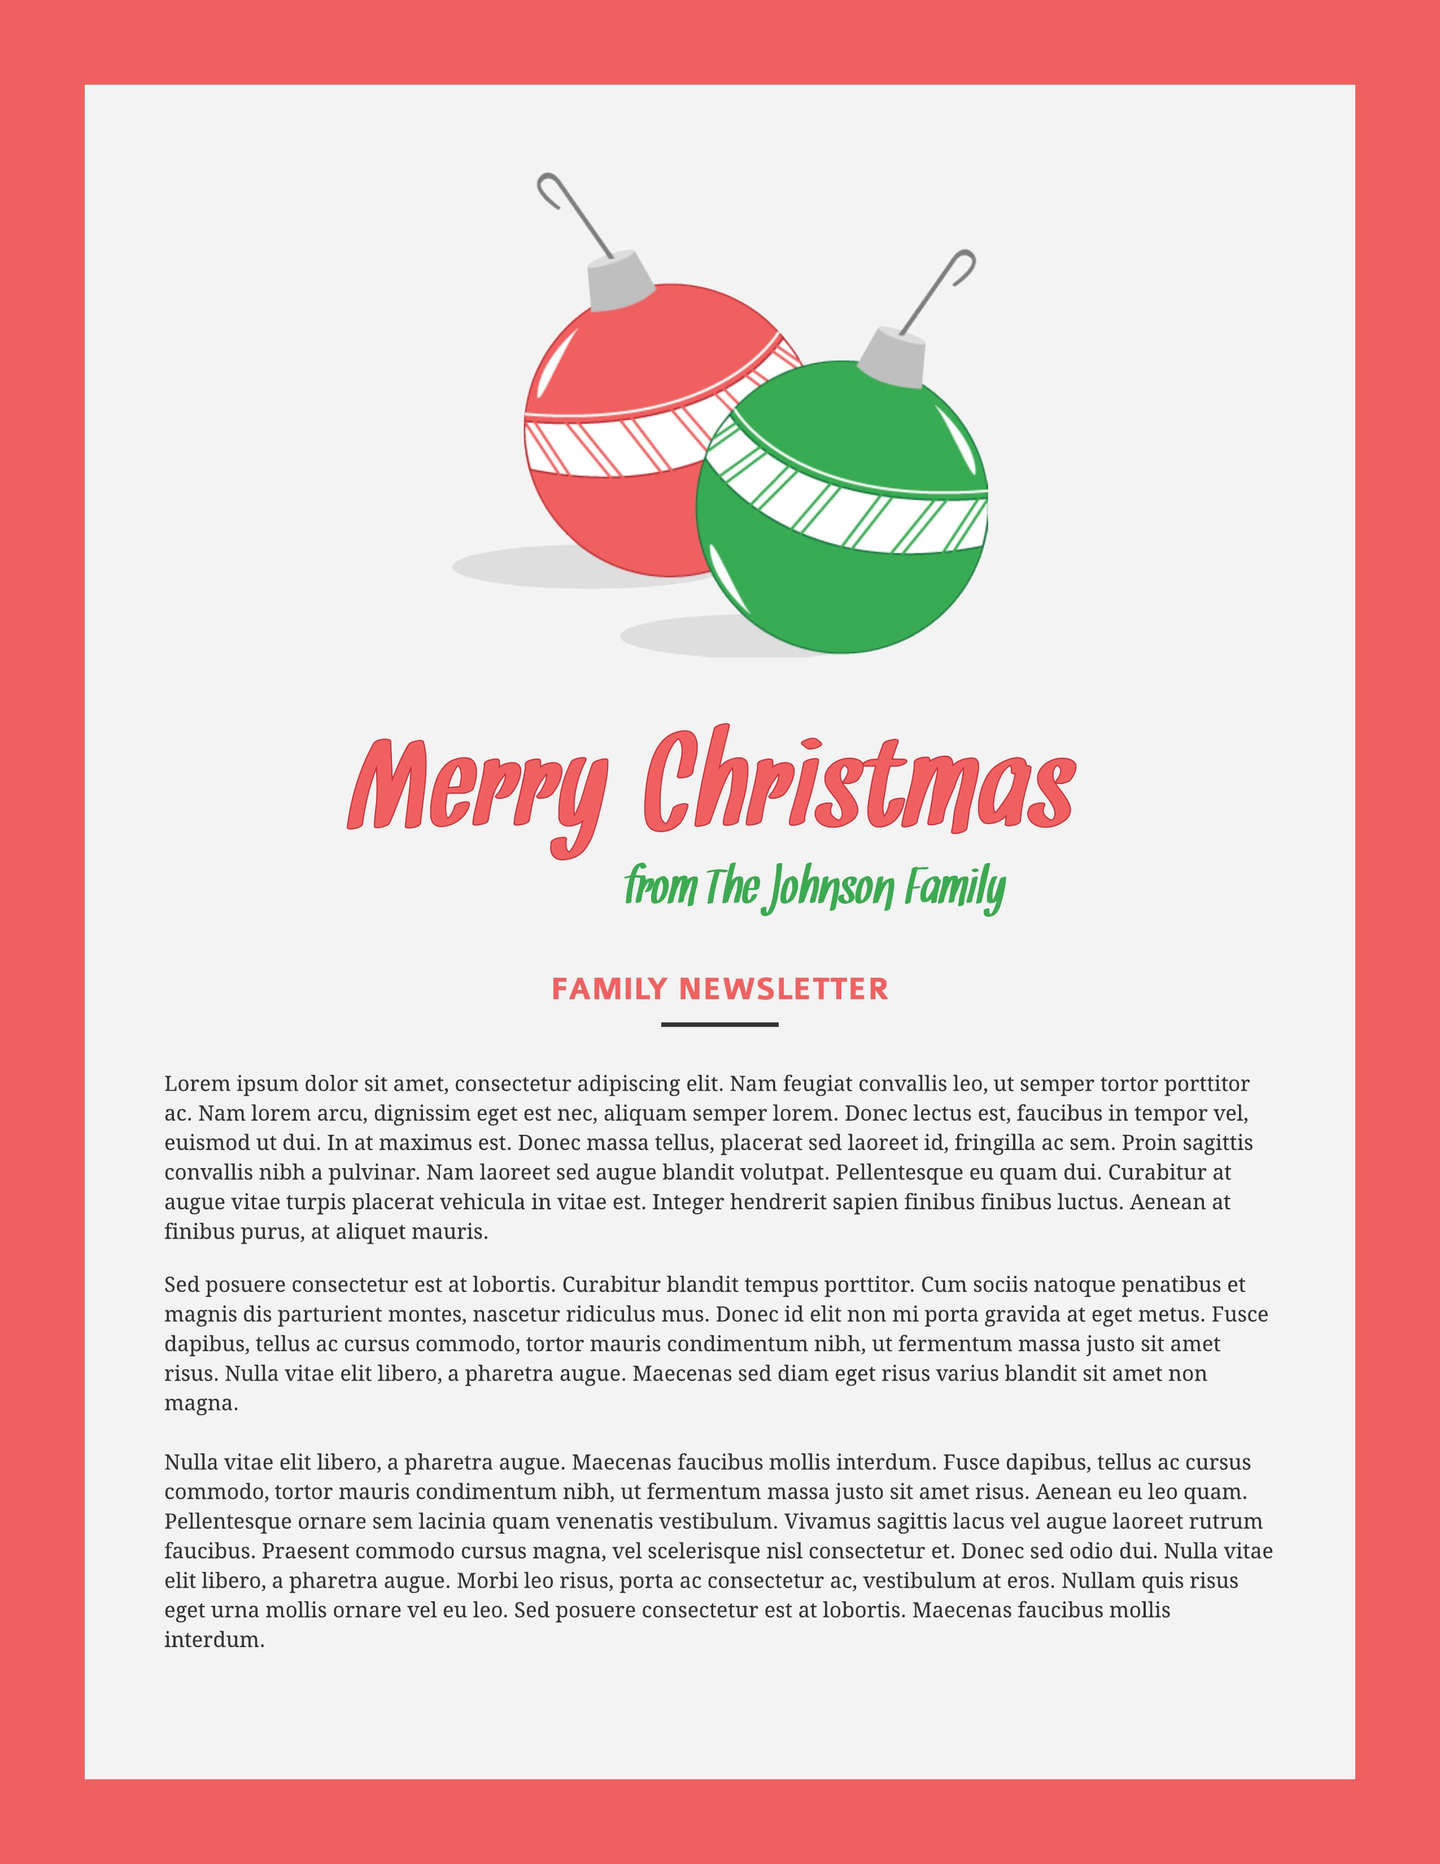 Holiday Newsletter Ideas For Businesses Koni Polycode Co